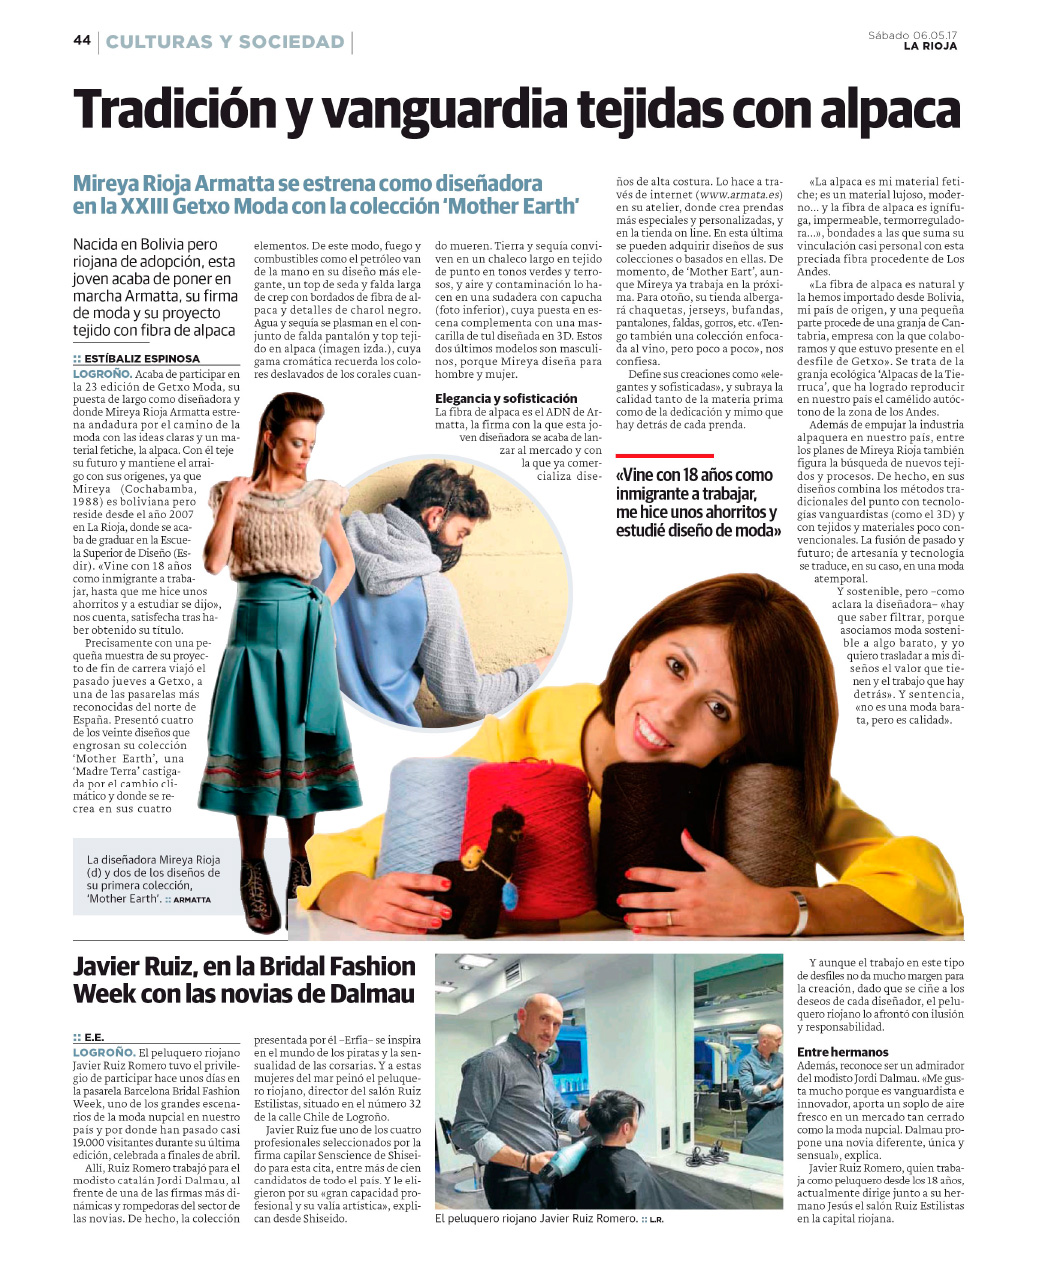 The introduction of ARMATTA is news in Spanish newspaper